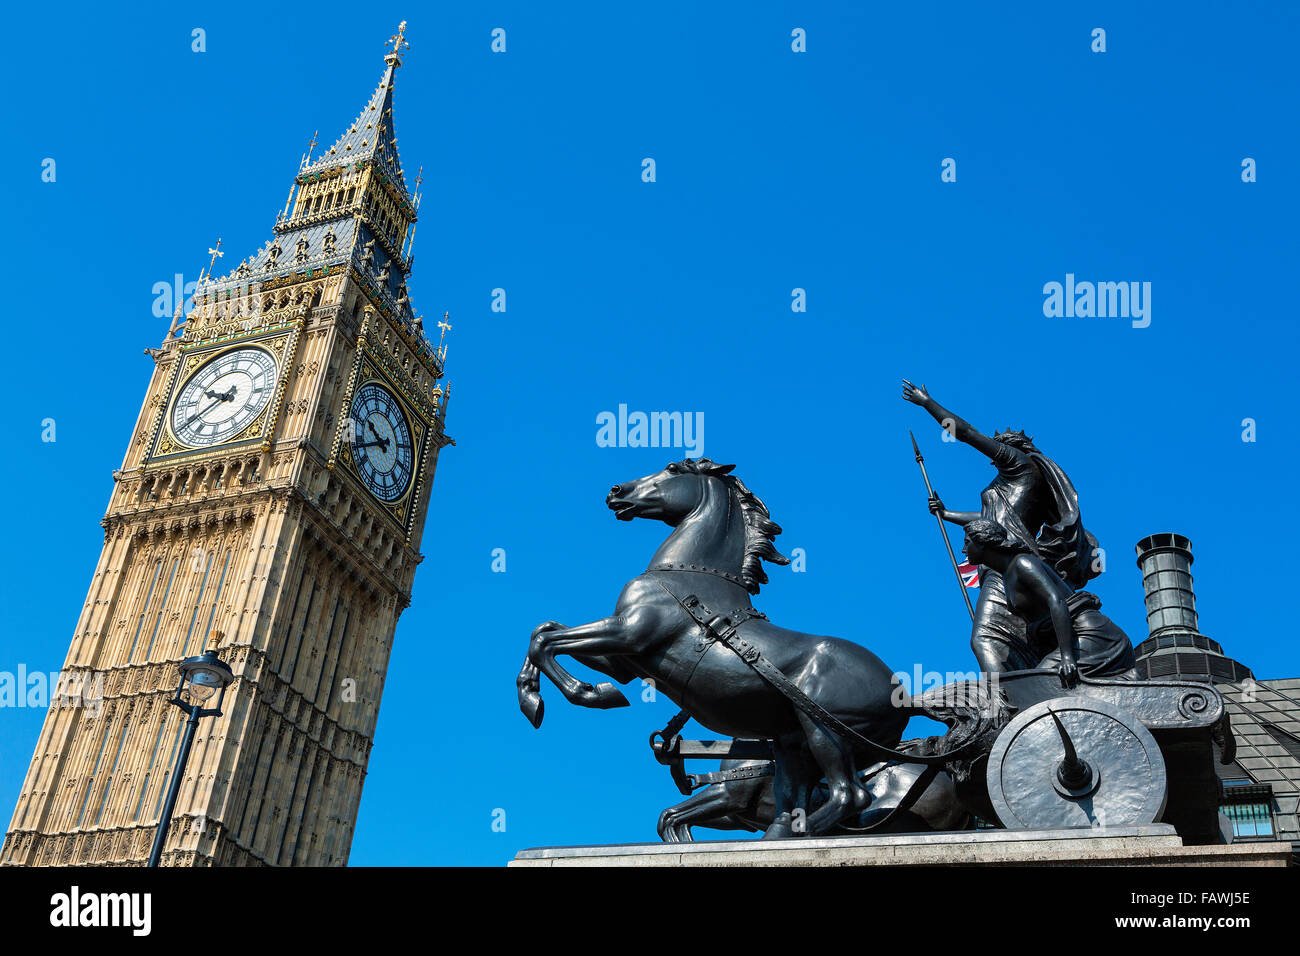 London, Big Ben clock tower - Stock Image